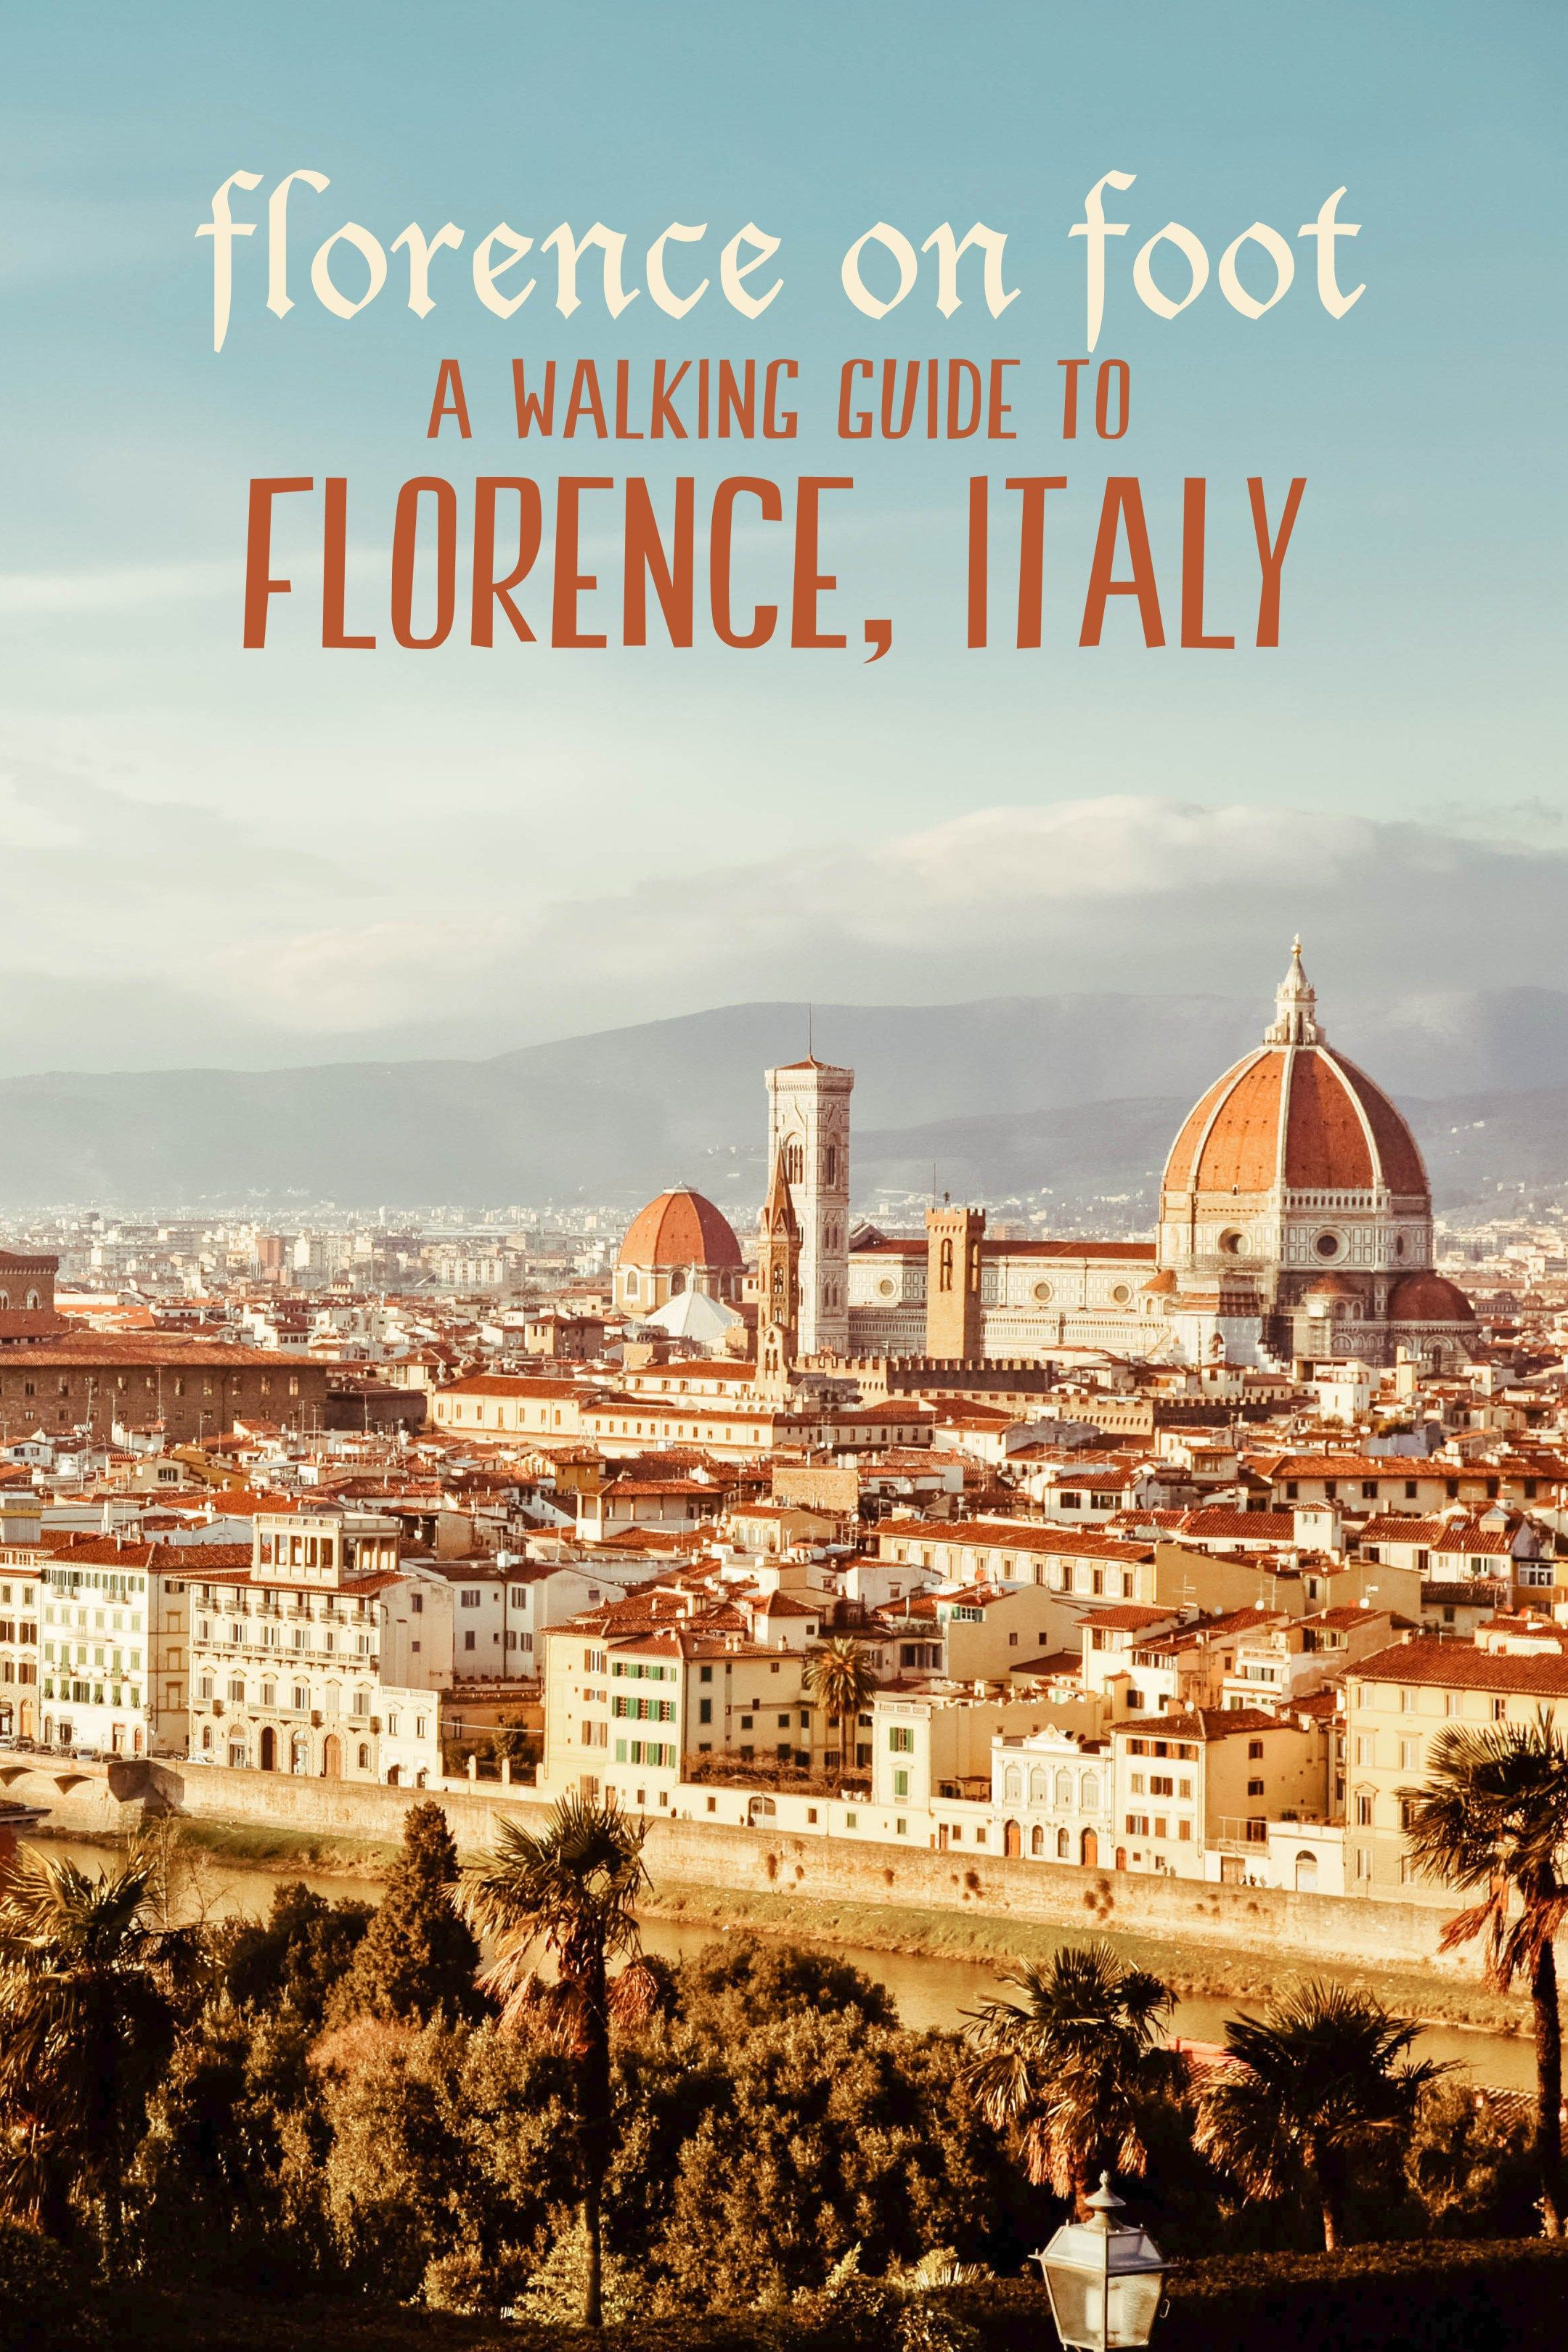 Italian Florence: Florence On Foot: A Walking Guide To Florence, Italy